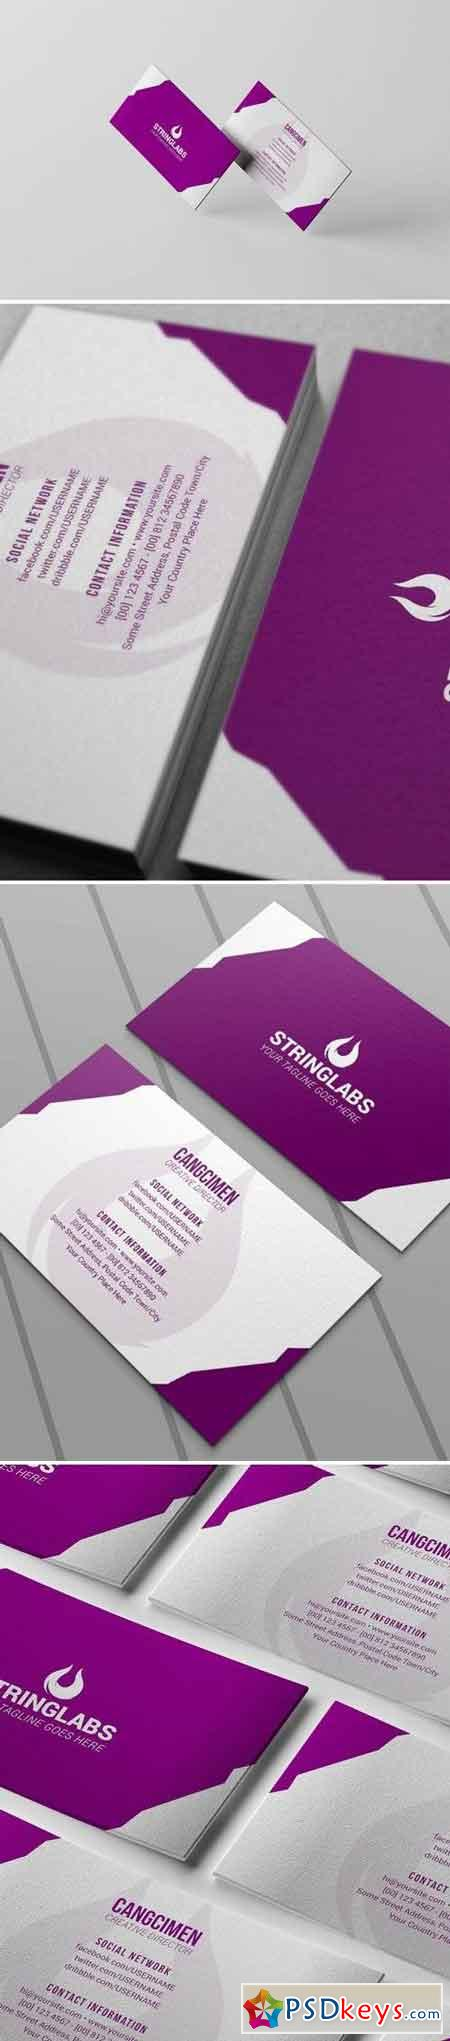 Purple Corporate - Business Card Template